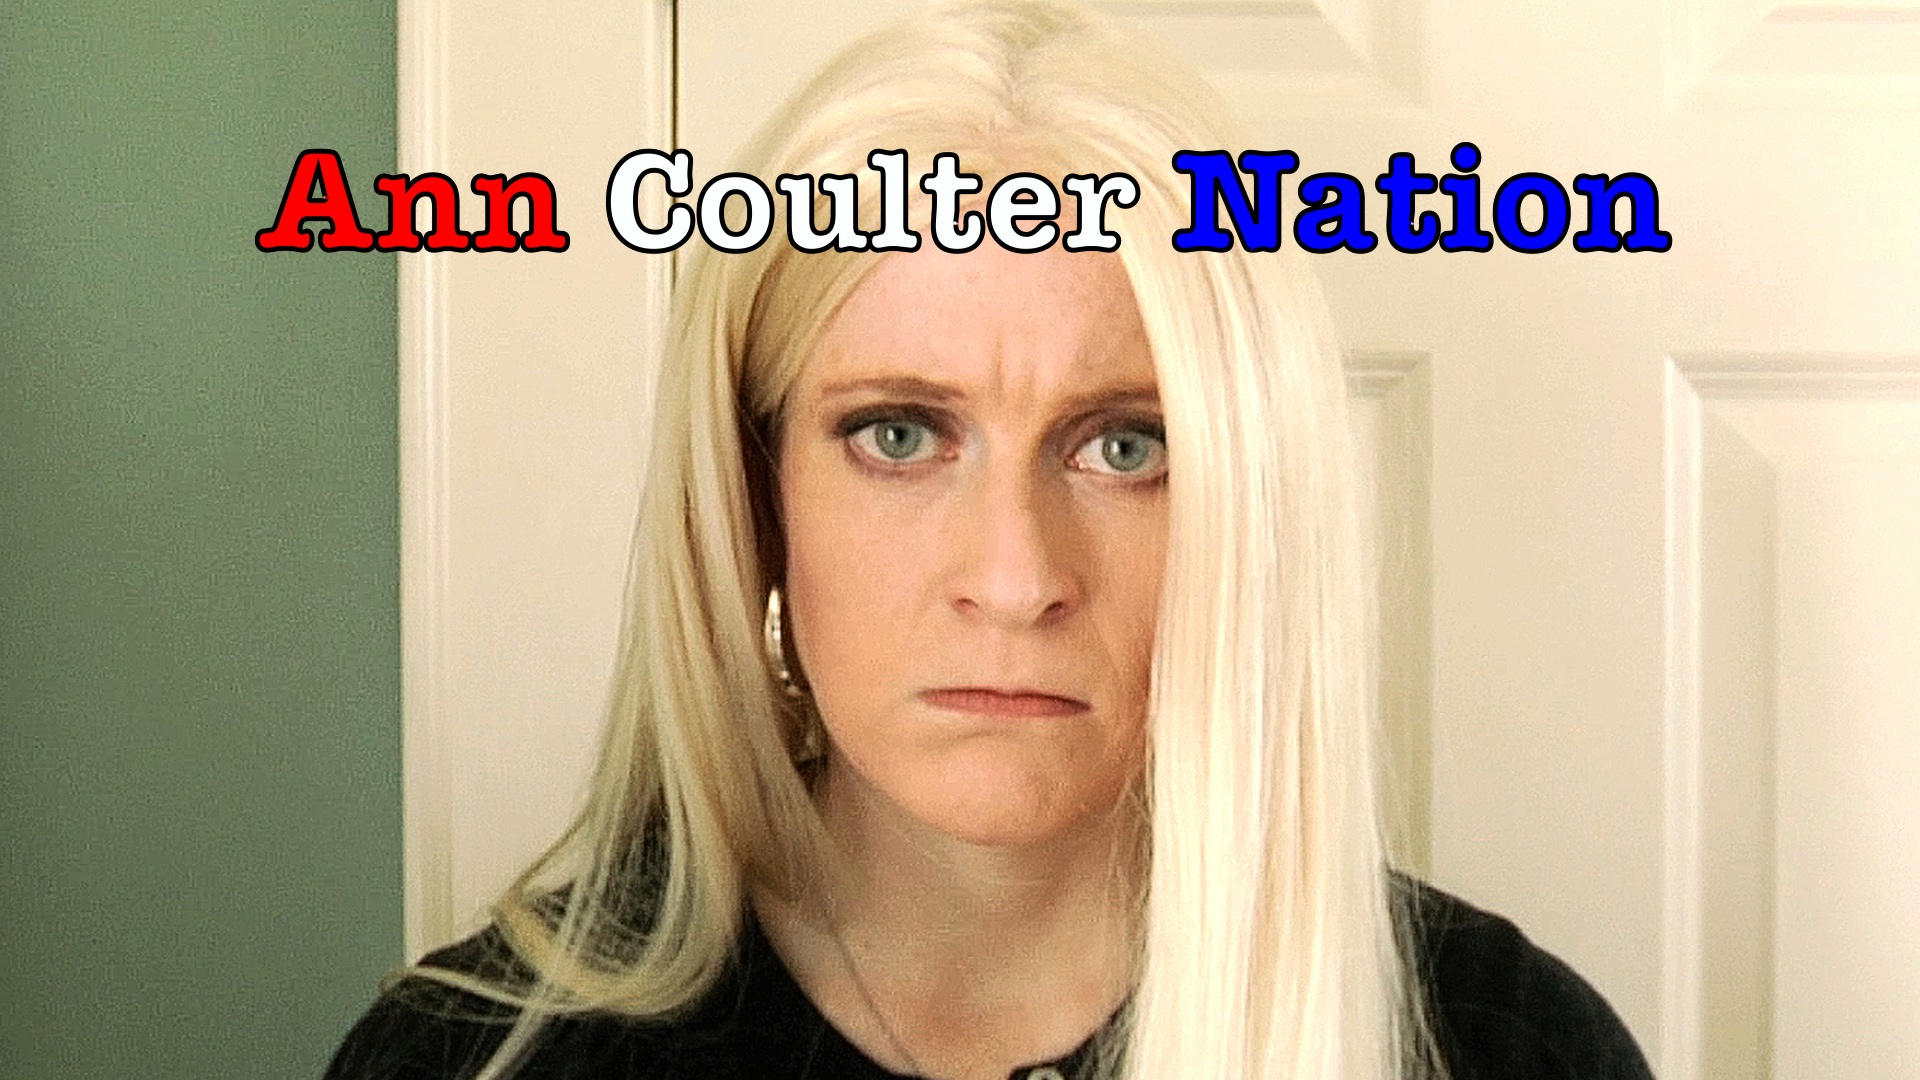 Ann Coulter Nation (web series)